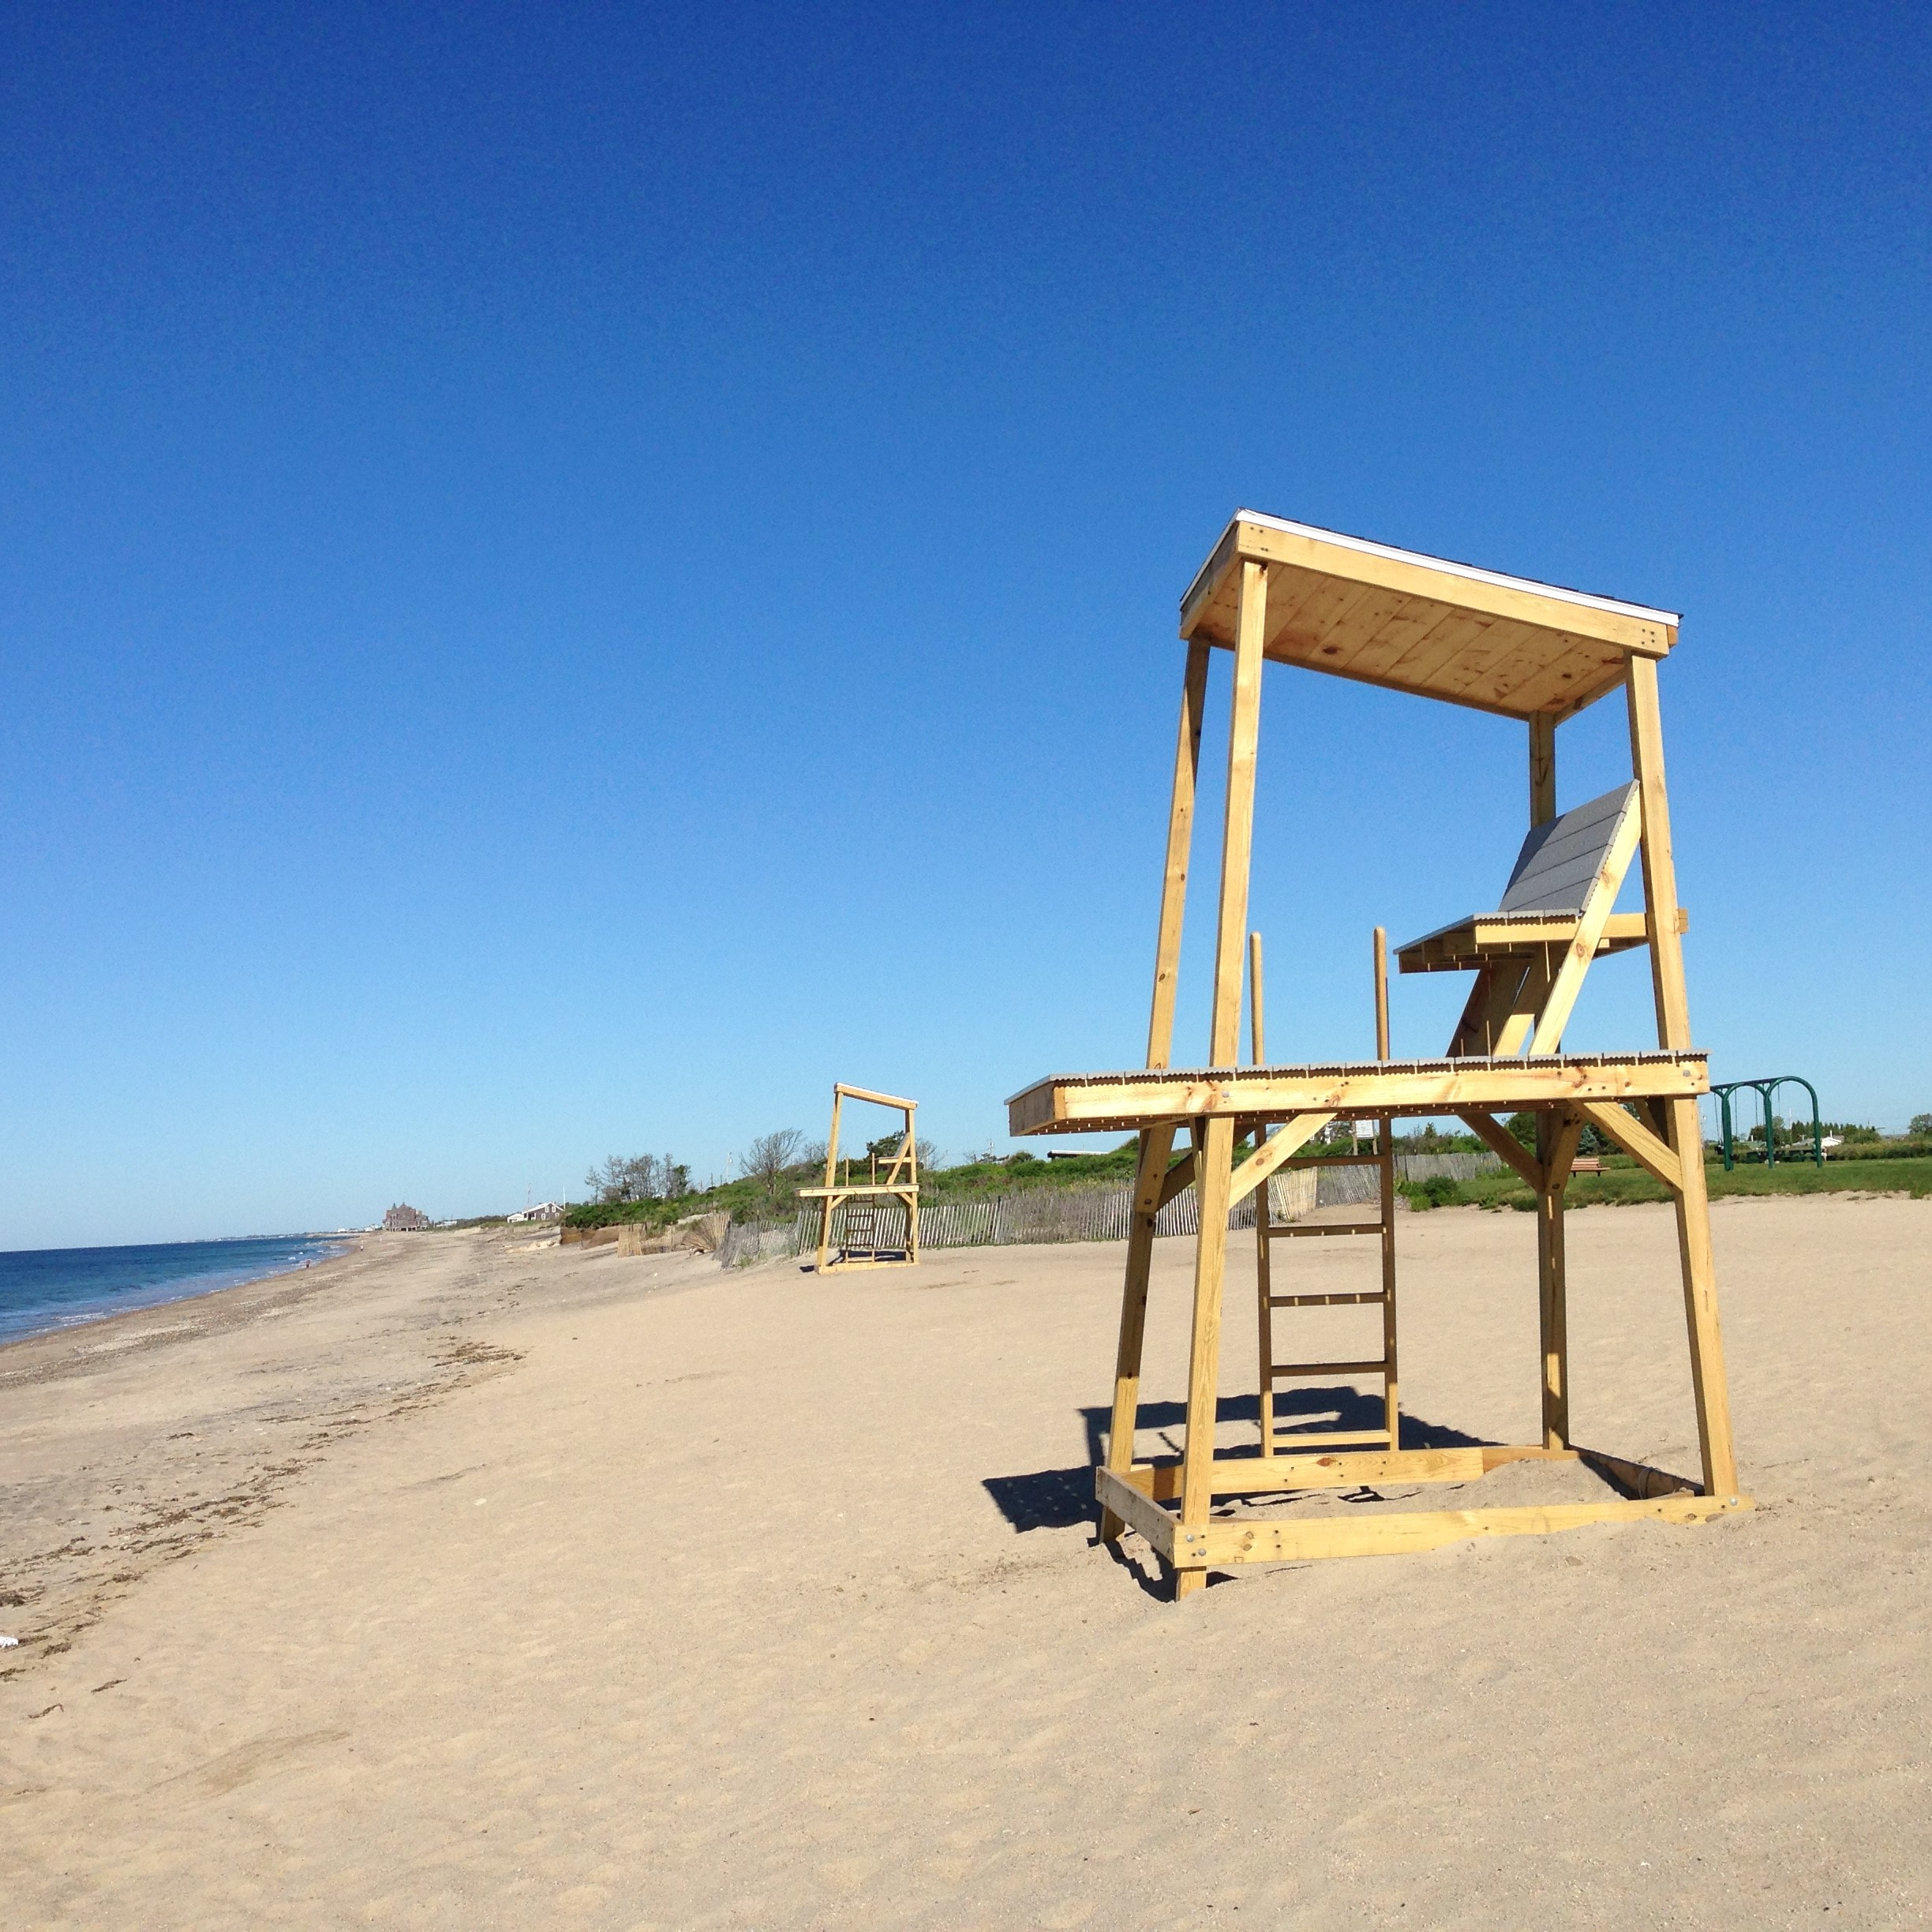 Beach lifeguard chair.jpg